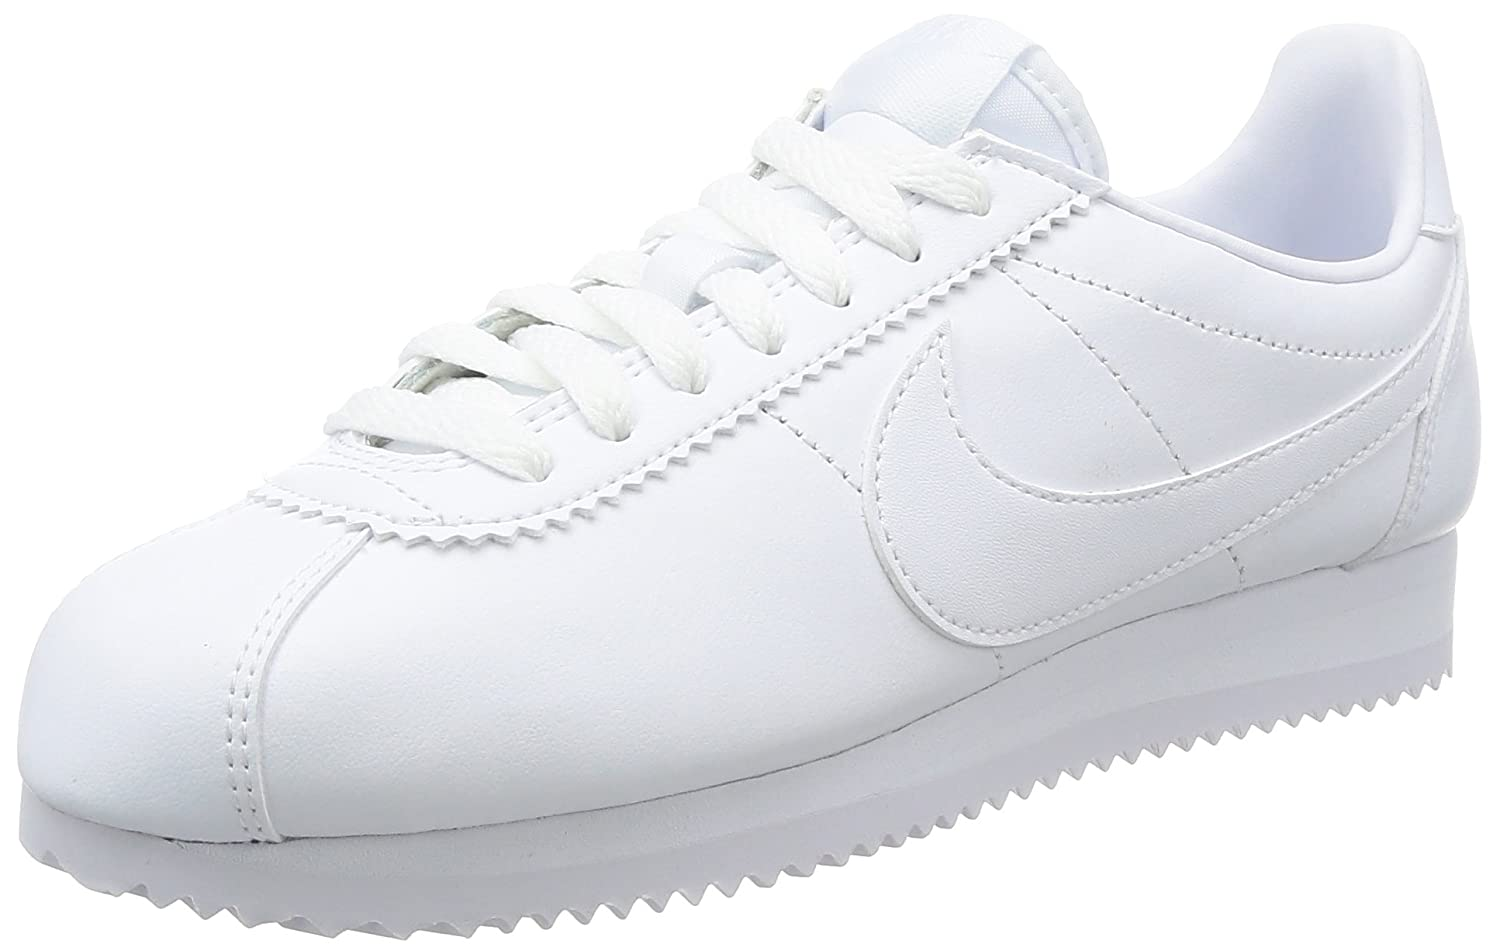 Nike Women s Classic Cortez Leather Low-Top Sneakers fd4ae931442